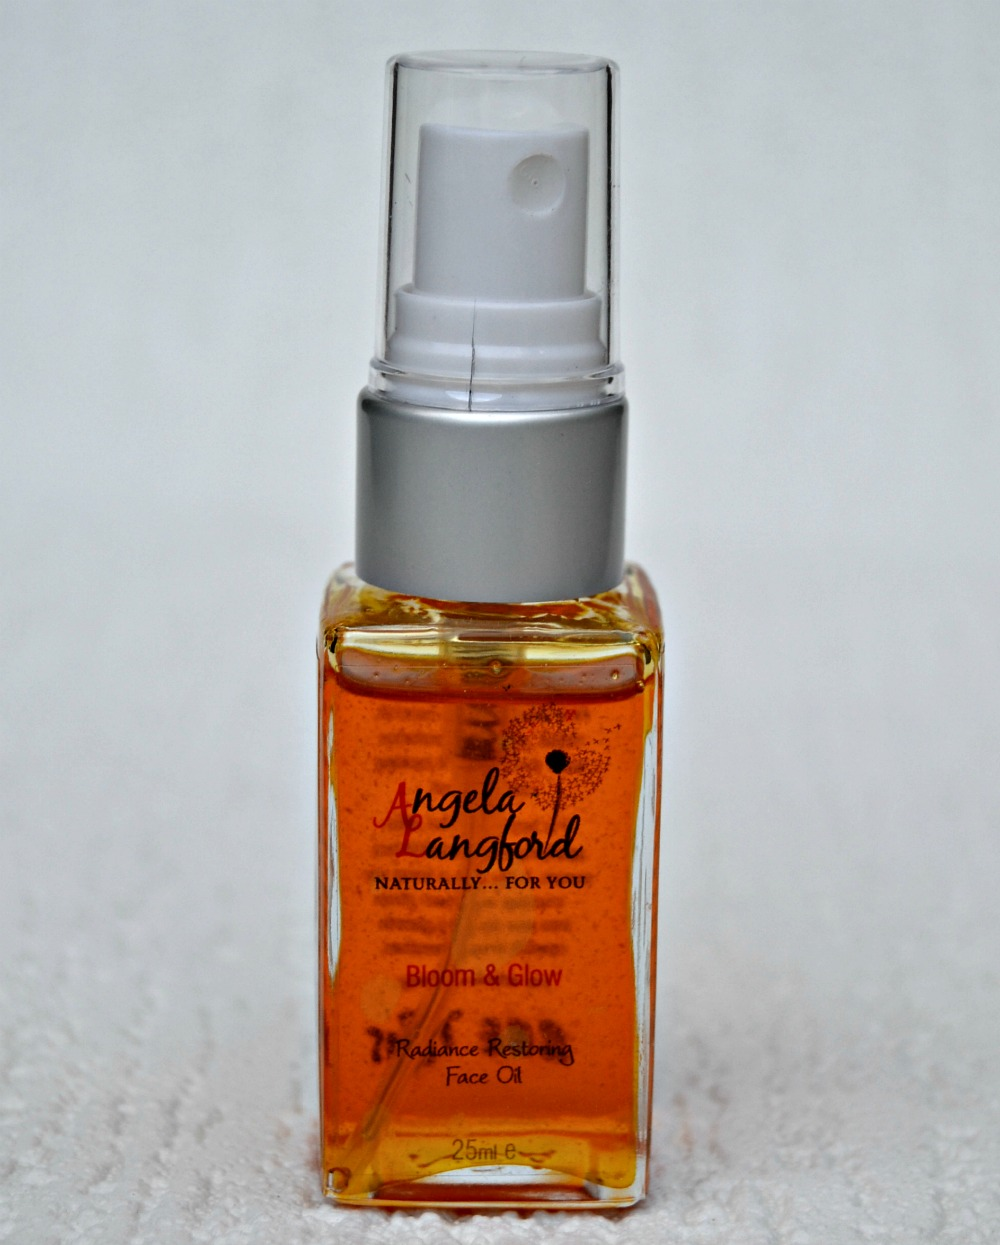 Angela Langford Skincare Bloom & Glow